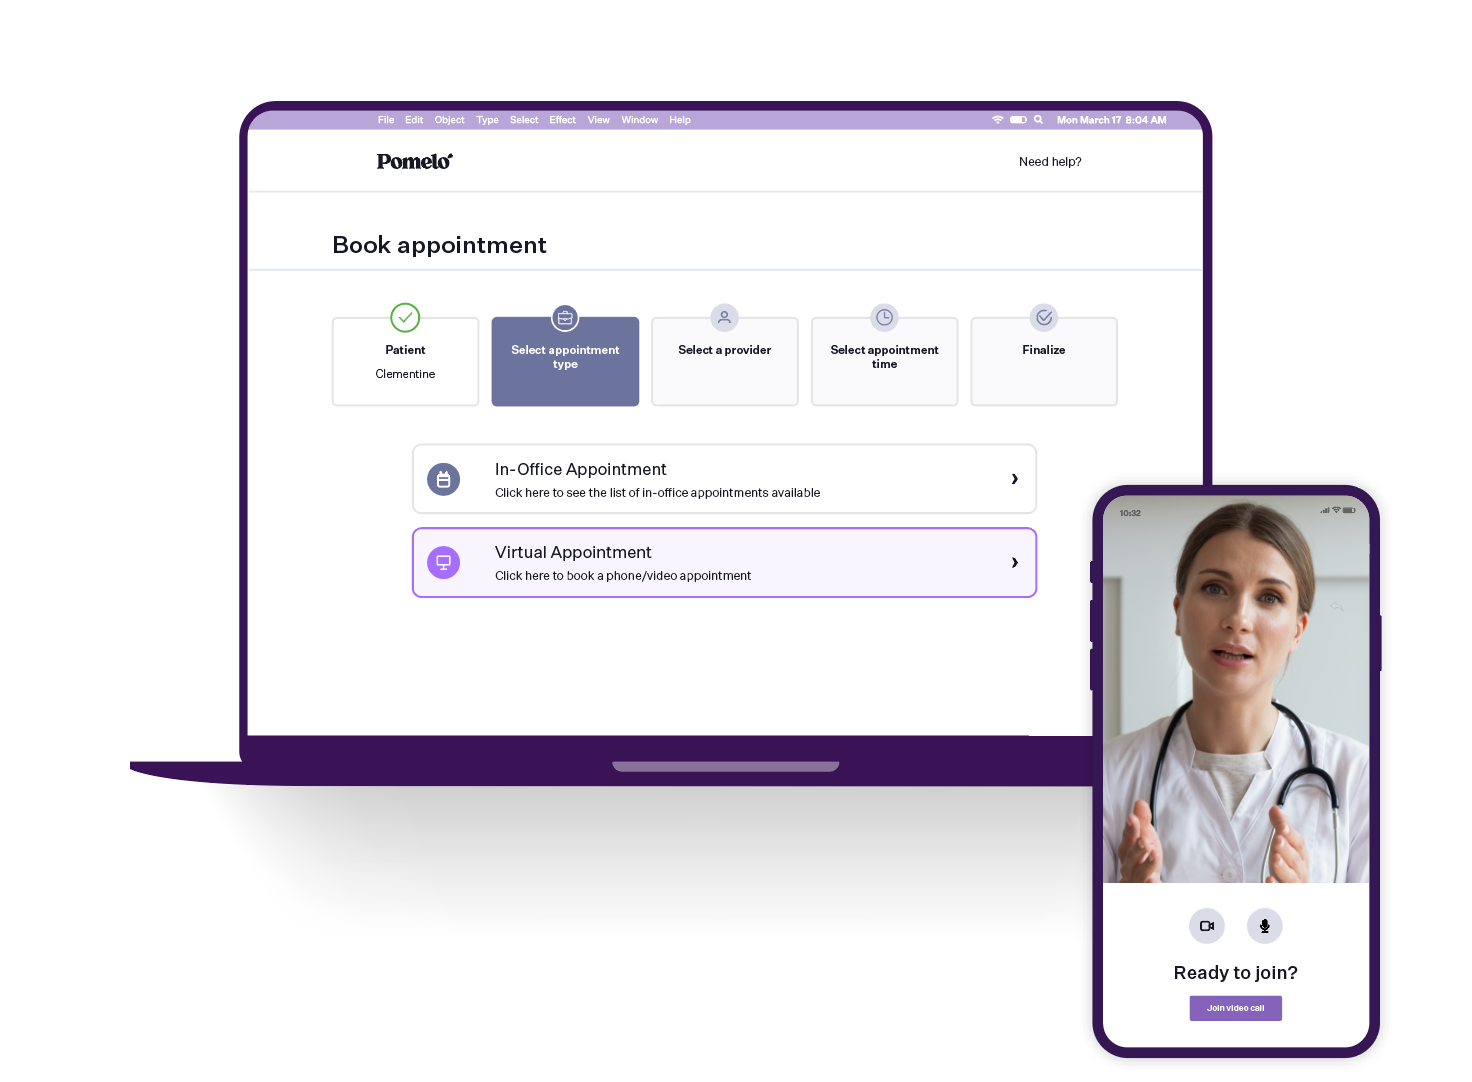 Pomelo Health Software - Engage with your patients through secure, compliant video consultations, without any additional software downloads or registrations.